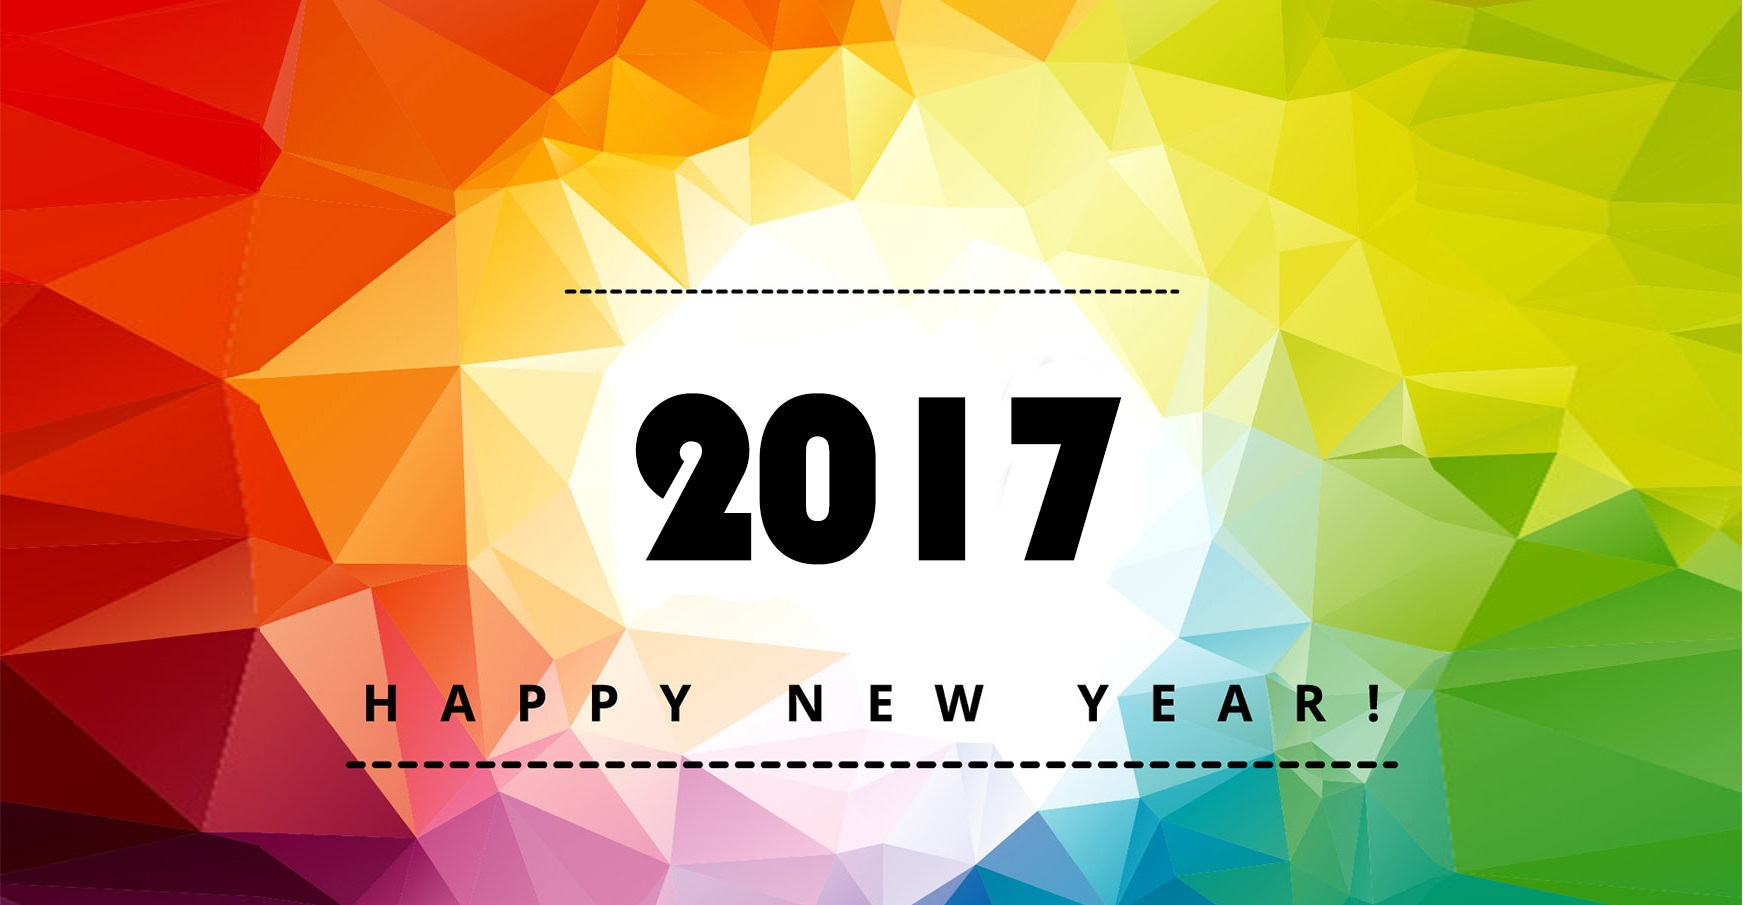 Wallpaper download hd 2017 - Download New Year Image For Whatsapp Dp Profile Pic